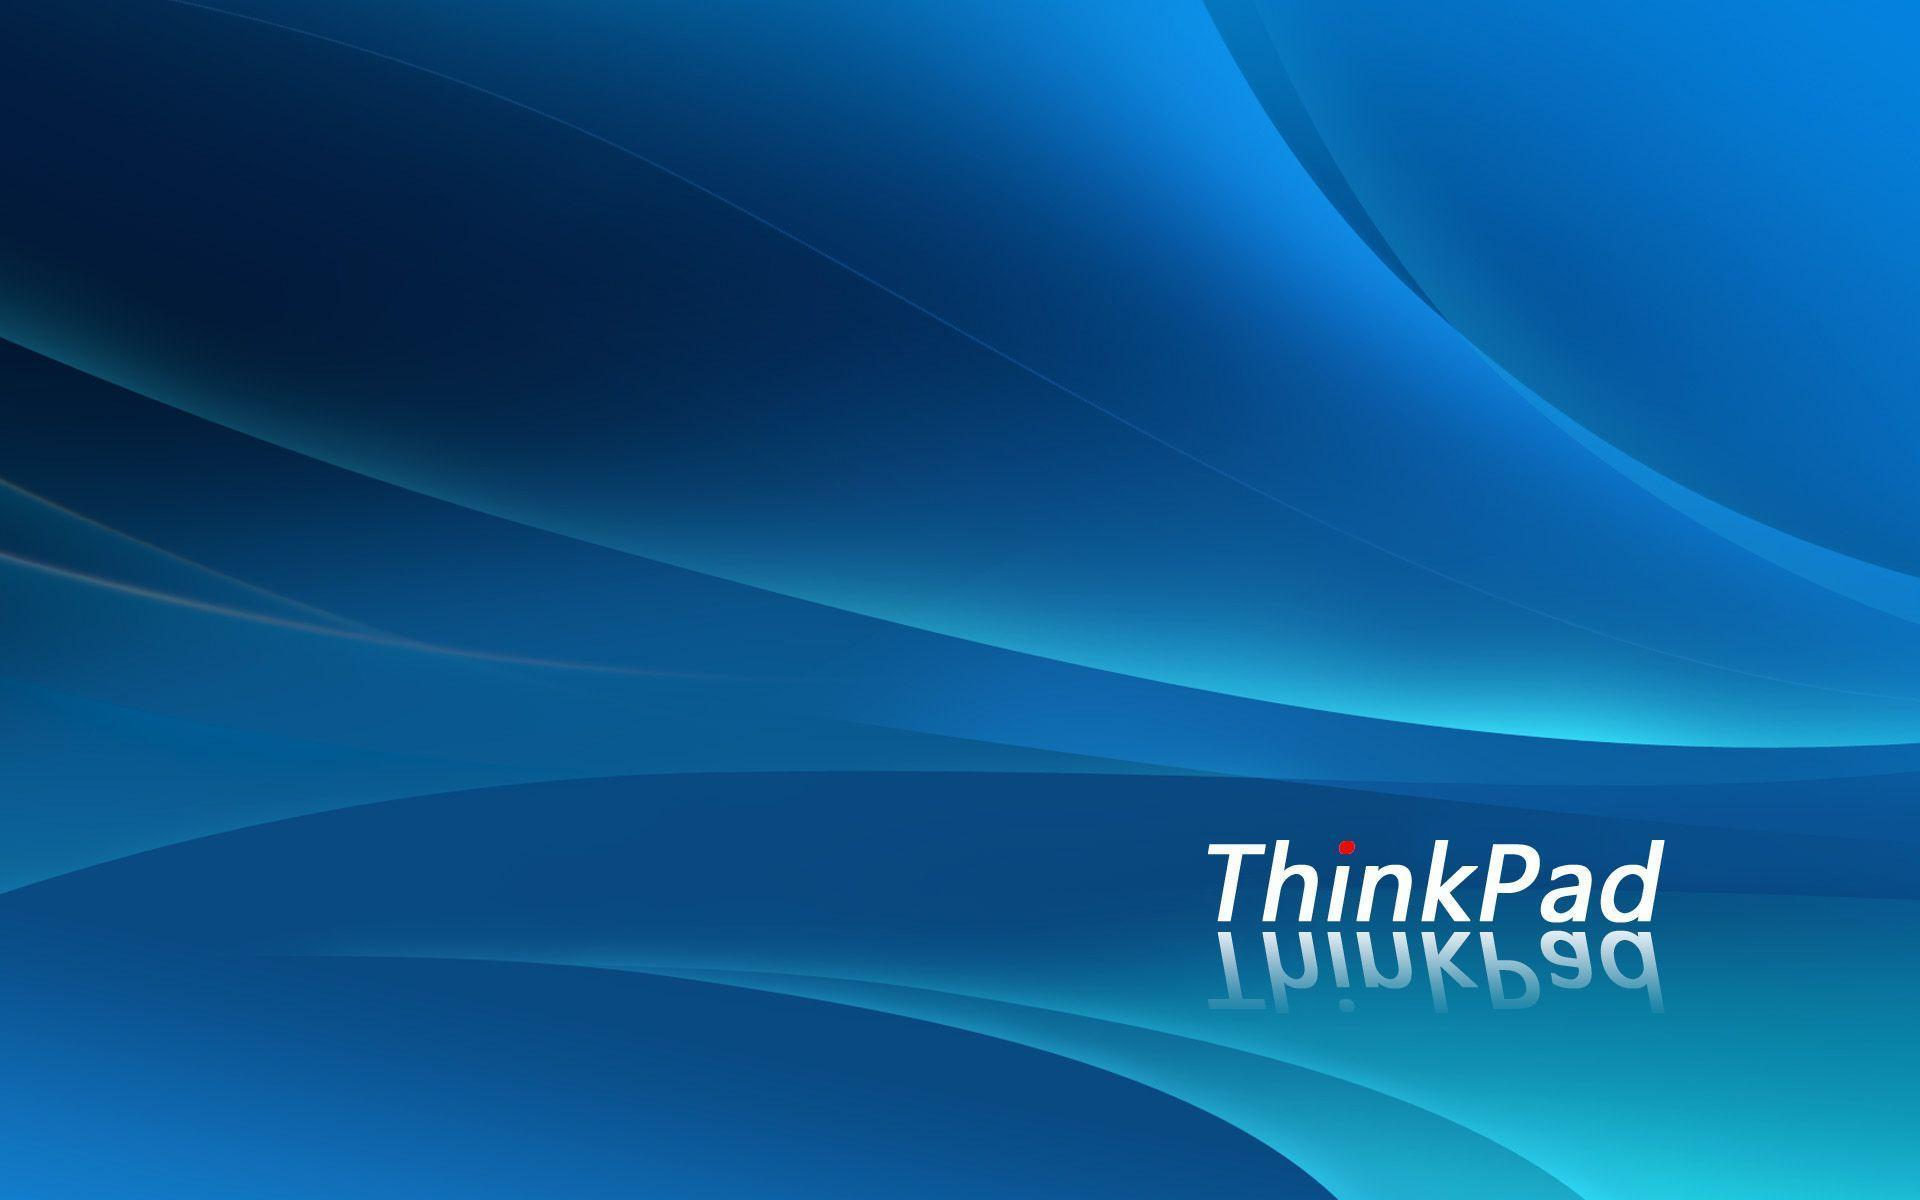 thinkpad wallpapers wallpaper - photo #29